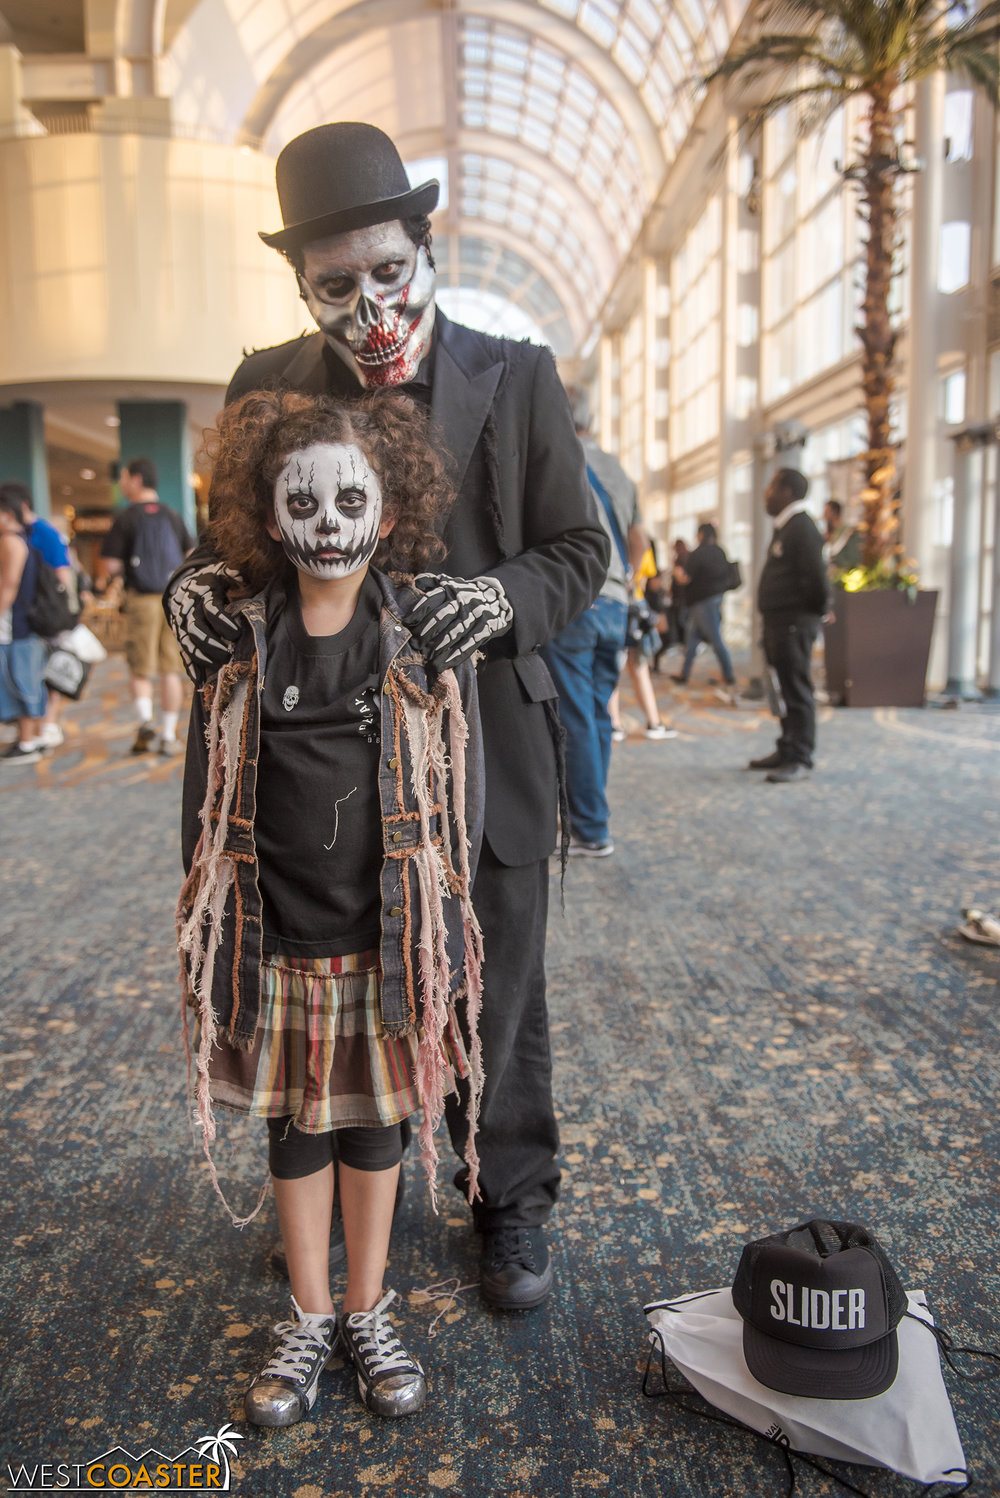 A repeat fixture at Midsummer Scream, this father/daughter duo could frequently be seen hanging around with the Decayed Brigade.